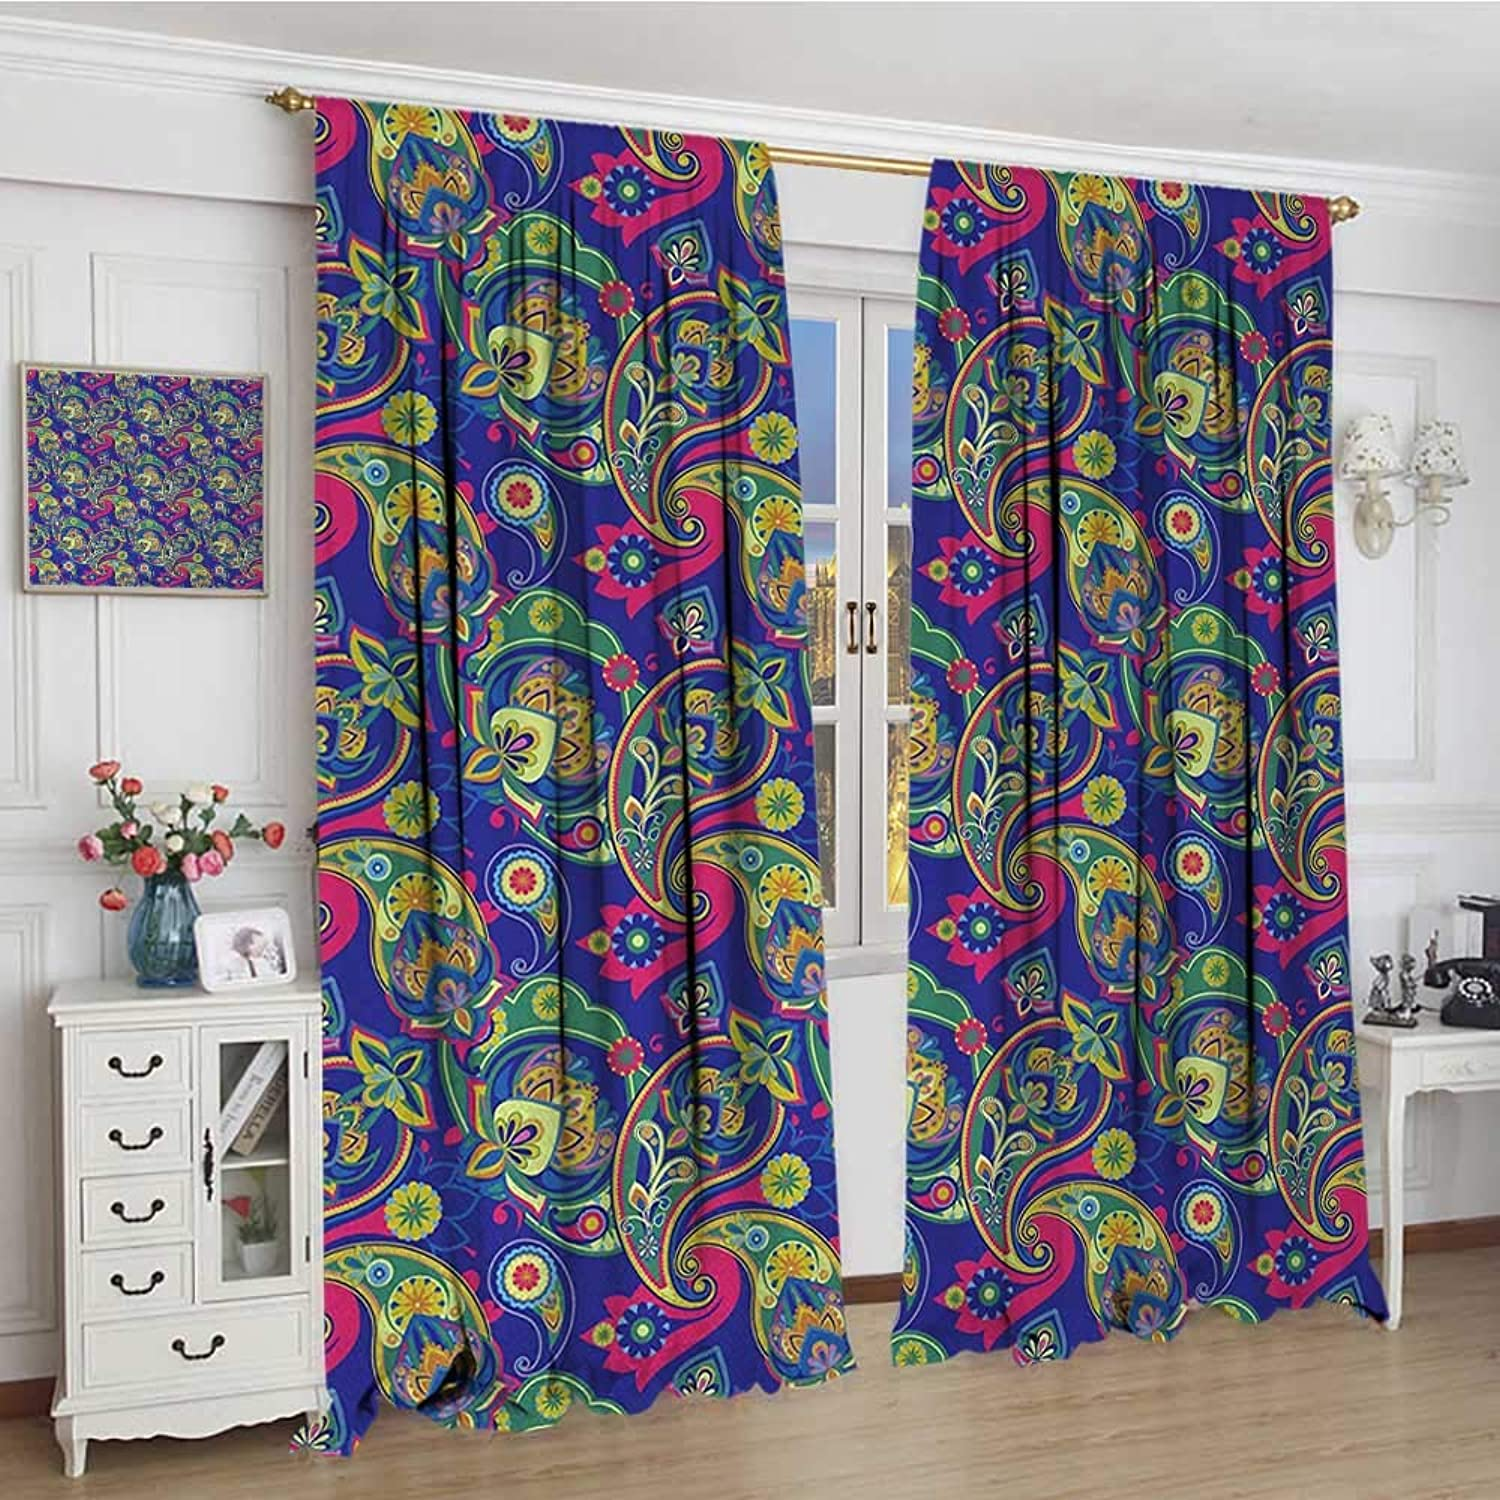 Smallbeefly Paisley Thermal Insulating Blackout Curtain Classic Persian Jacquard Boteh Ikat Motifs Old Welsh Pears Artwork Patterned Drape for Glass Door 72 x96  Indigo and Olive Green